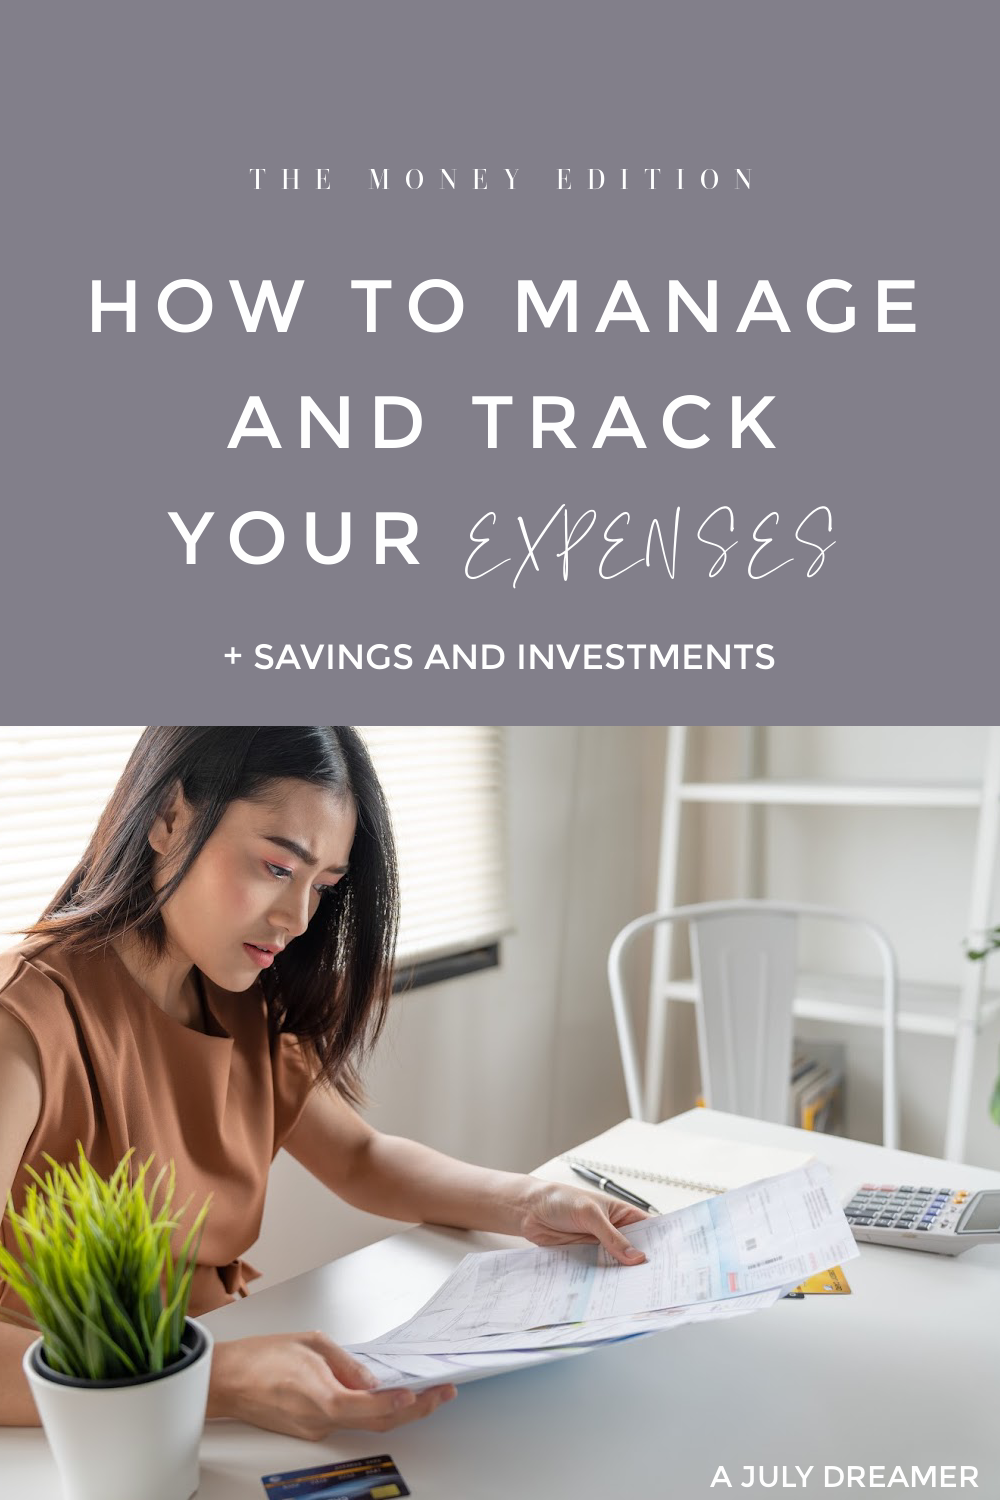 As a conscious money spender, I love nothing more than sharing what I use to track and manage my money day in and day out. I recently shared a post on some of the best money saving apps that I have used in the past and others that I am still using and it prompted this idea to share how I manage my money and some of the tools I utilise to track my spending.